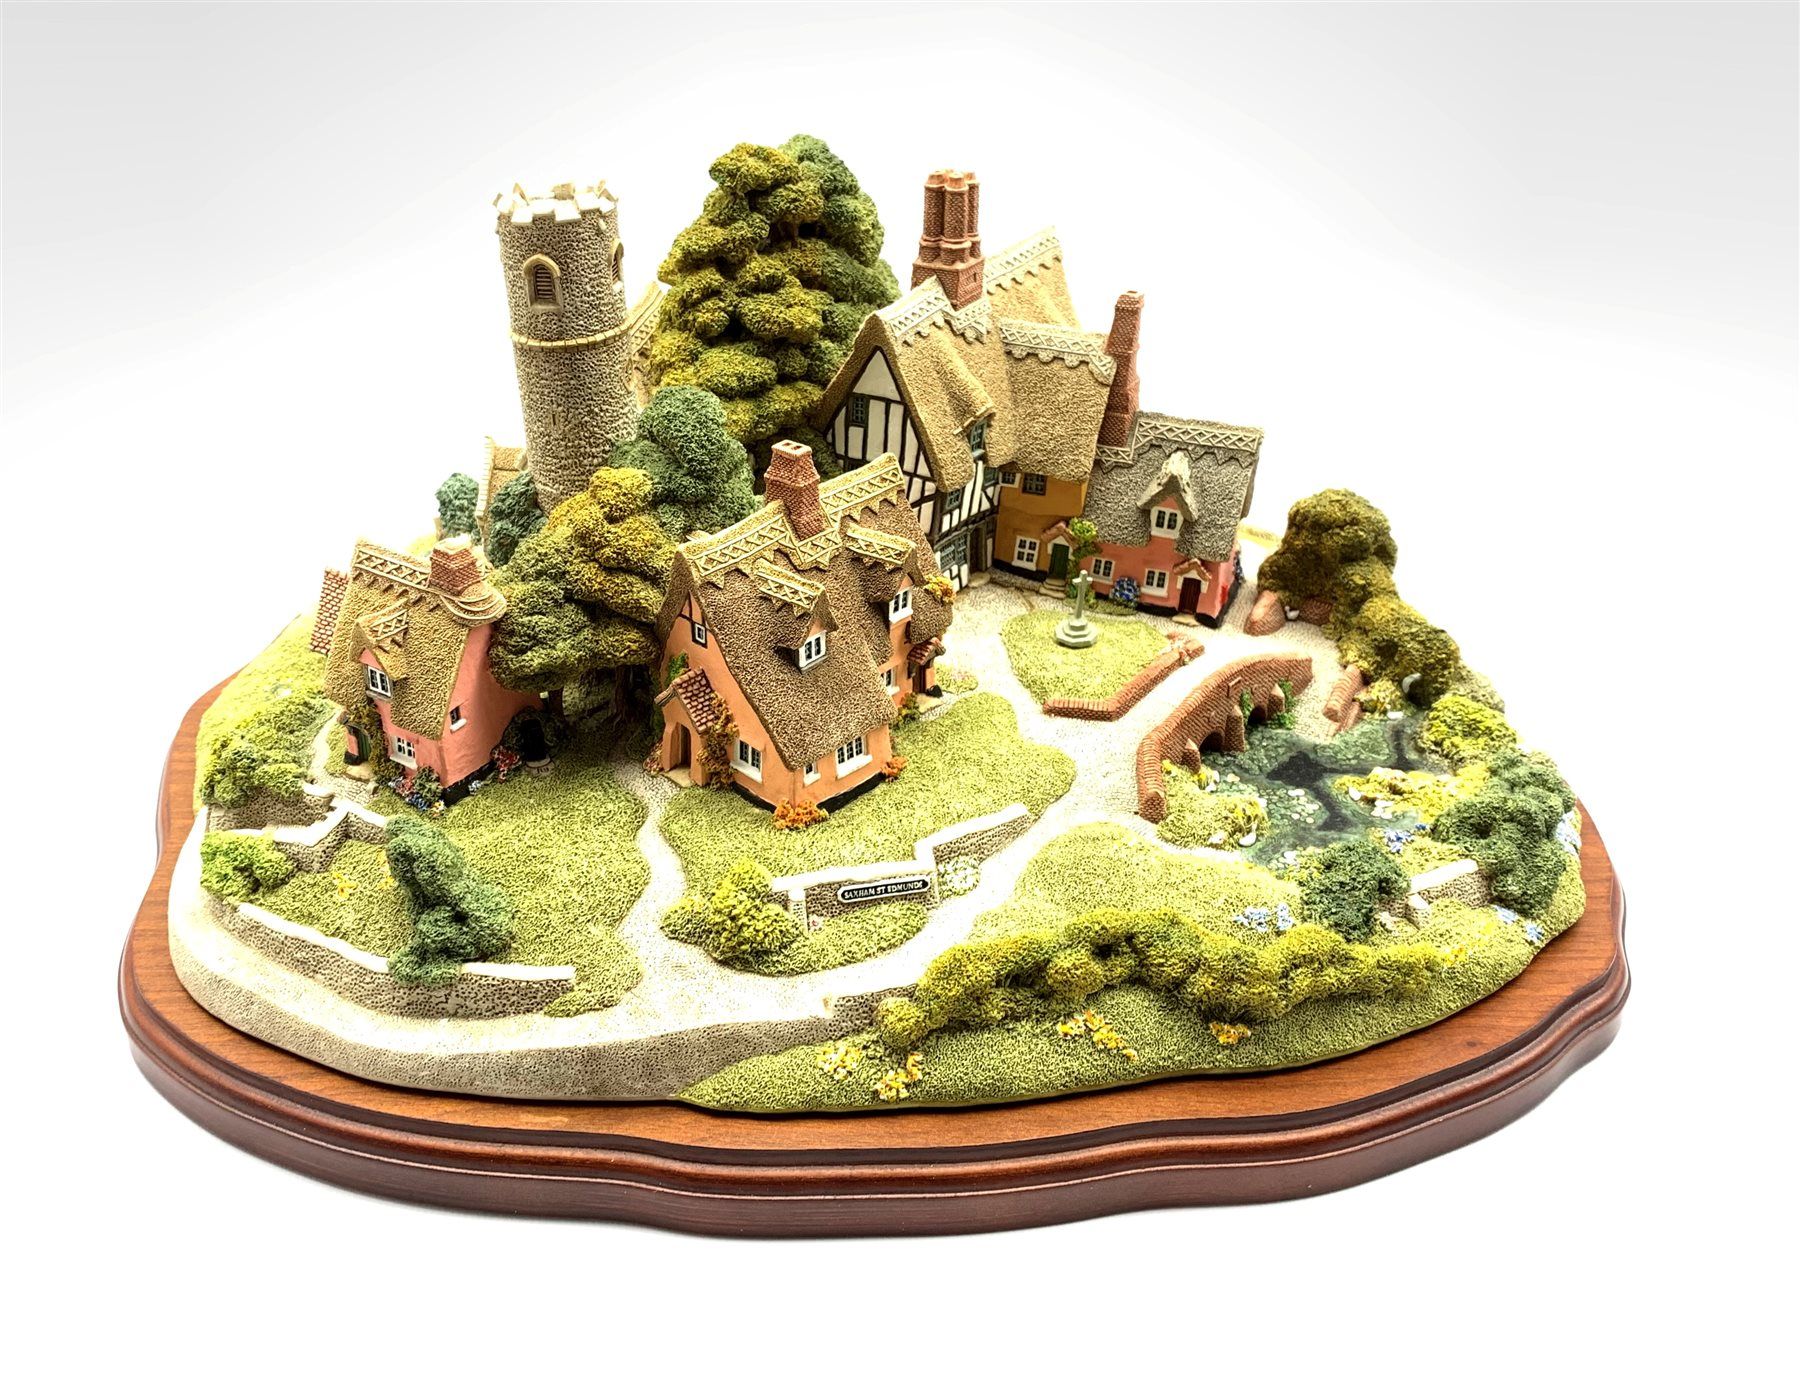 Large Lilliput Lane limited edition model 'Saxham St. Edmunds' No. 457/4500, boxed with certificate,